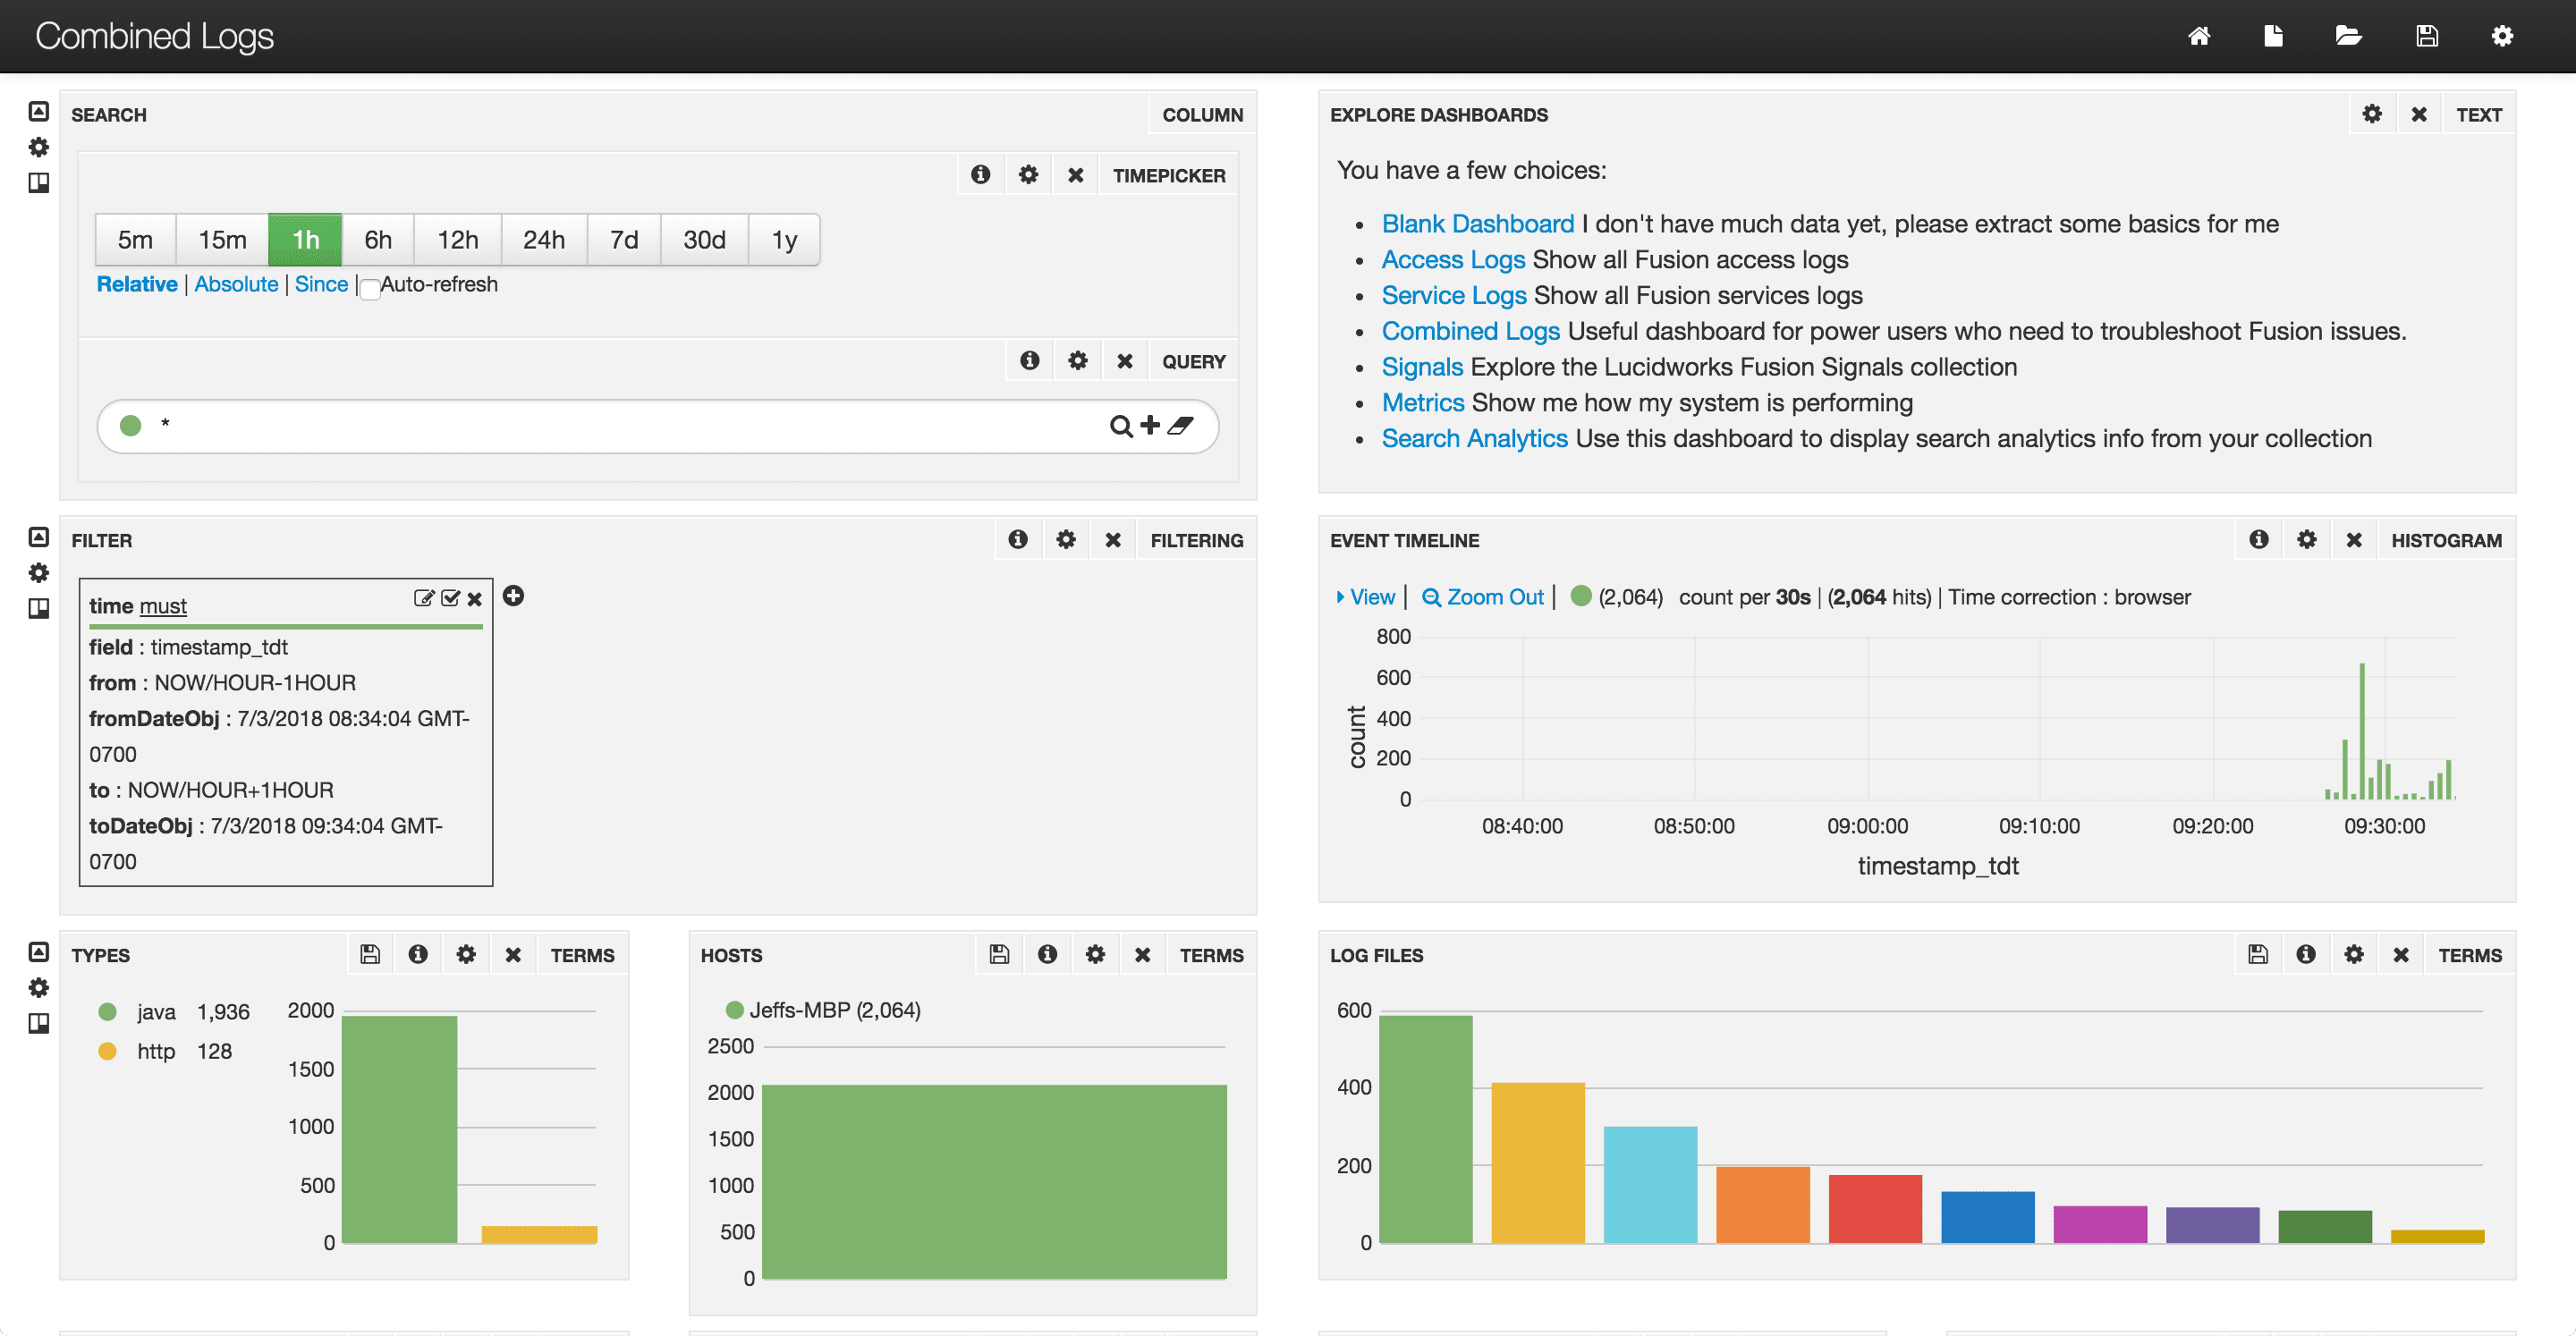 Combined Logs dashboard